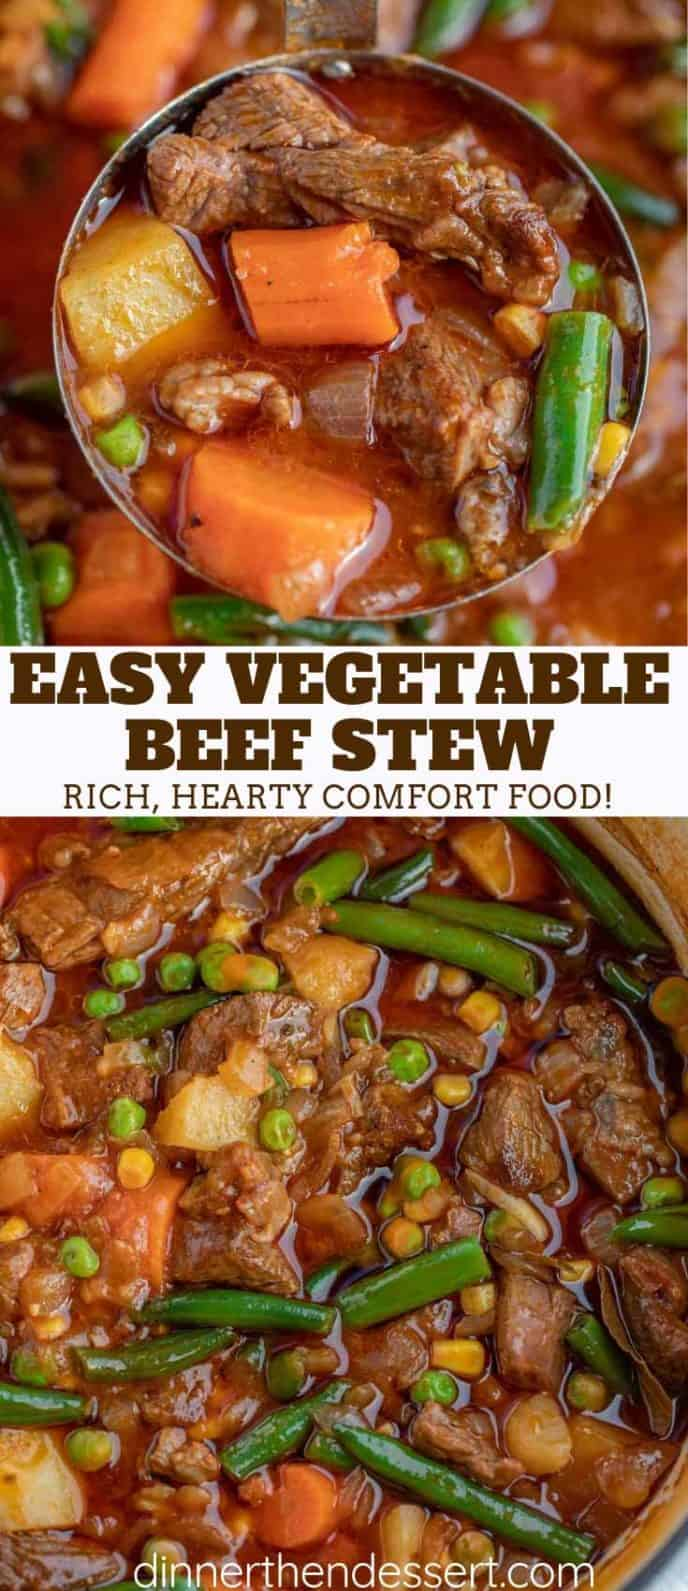 Rich Vegetable and Beef Stew